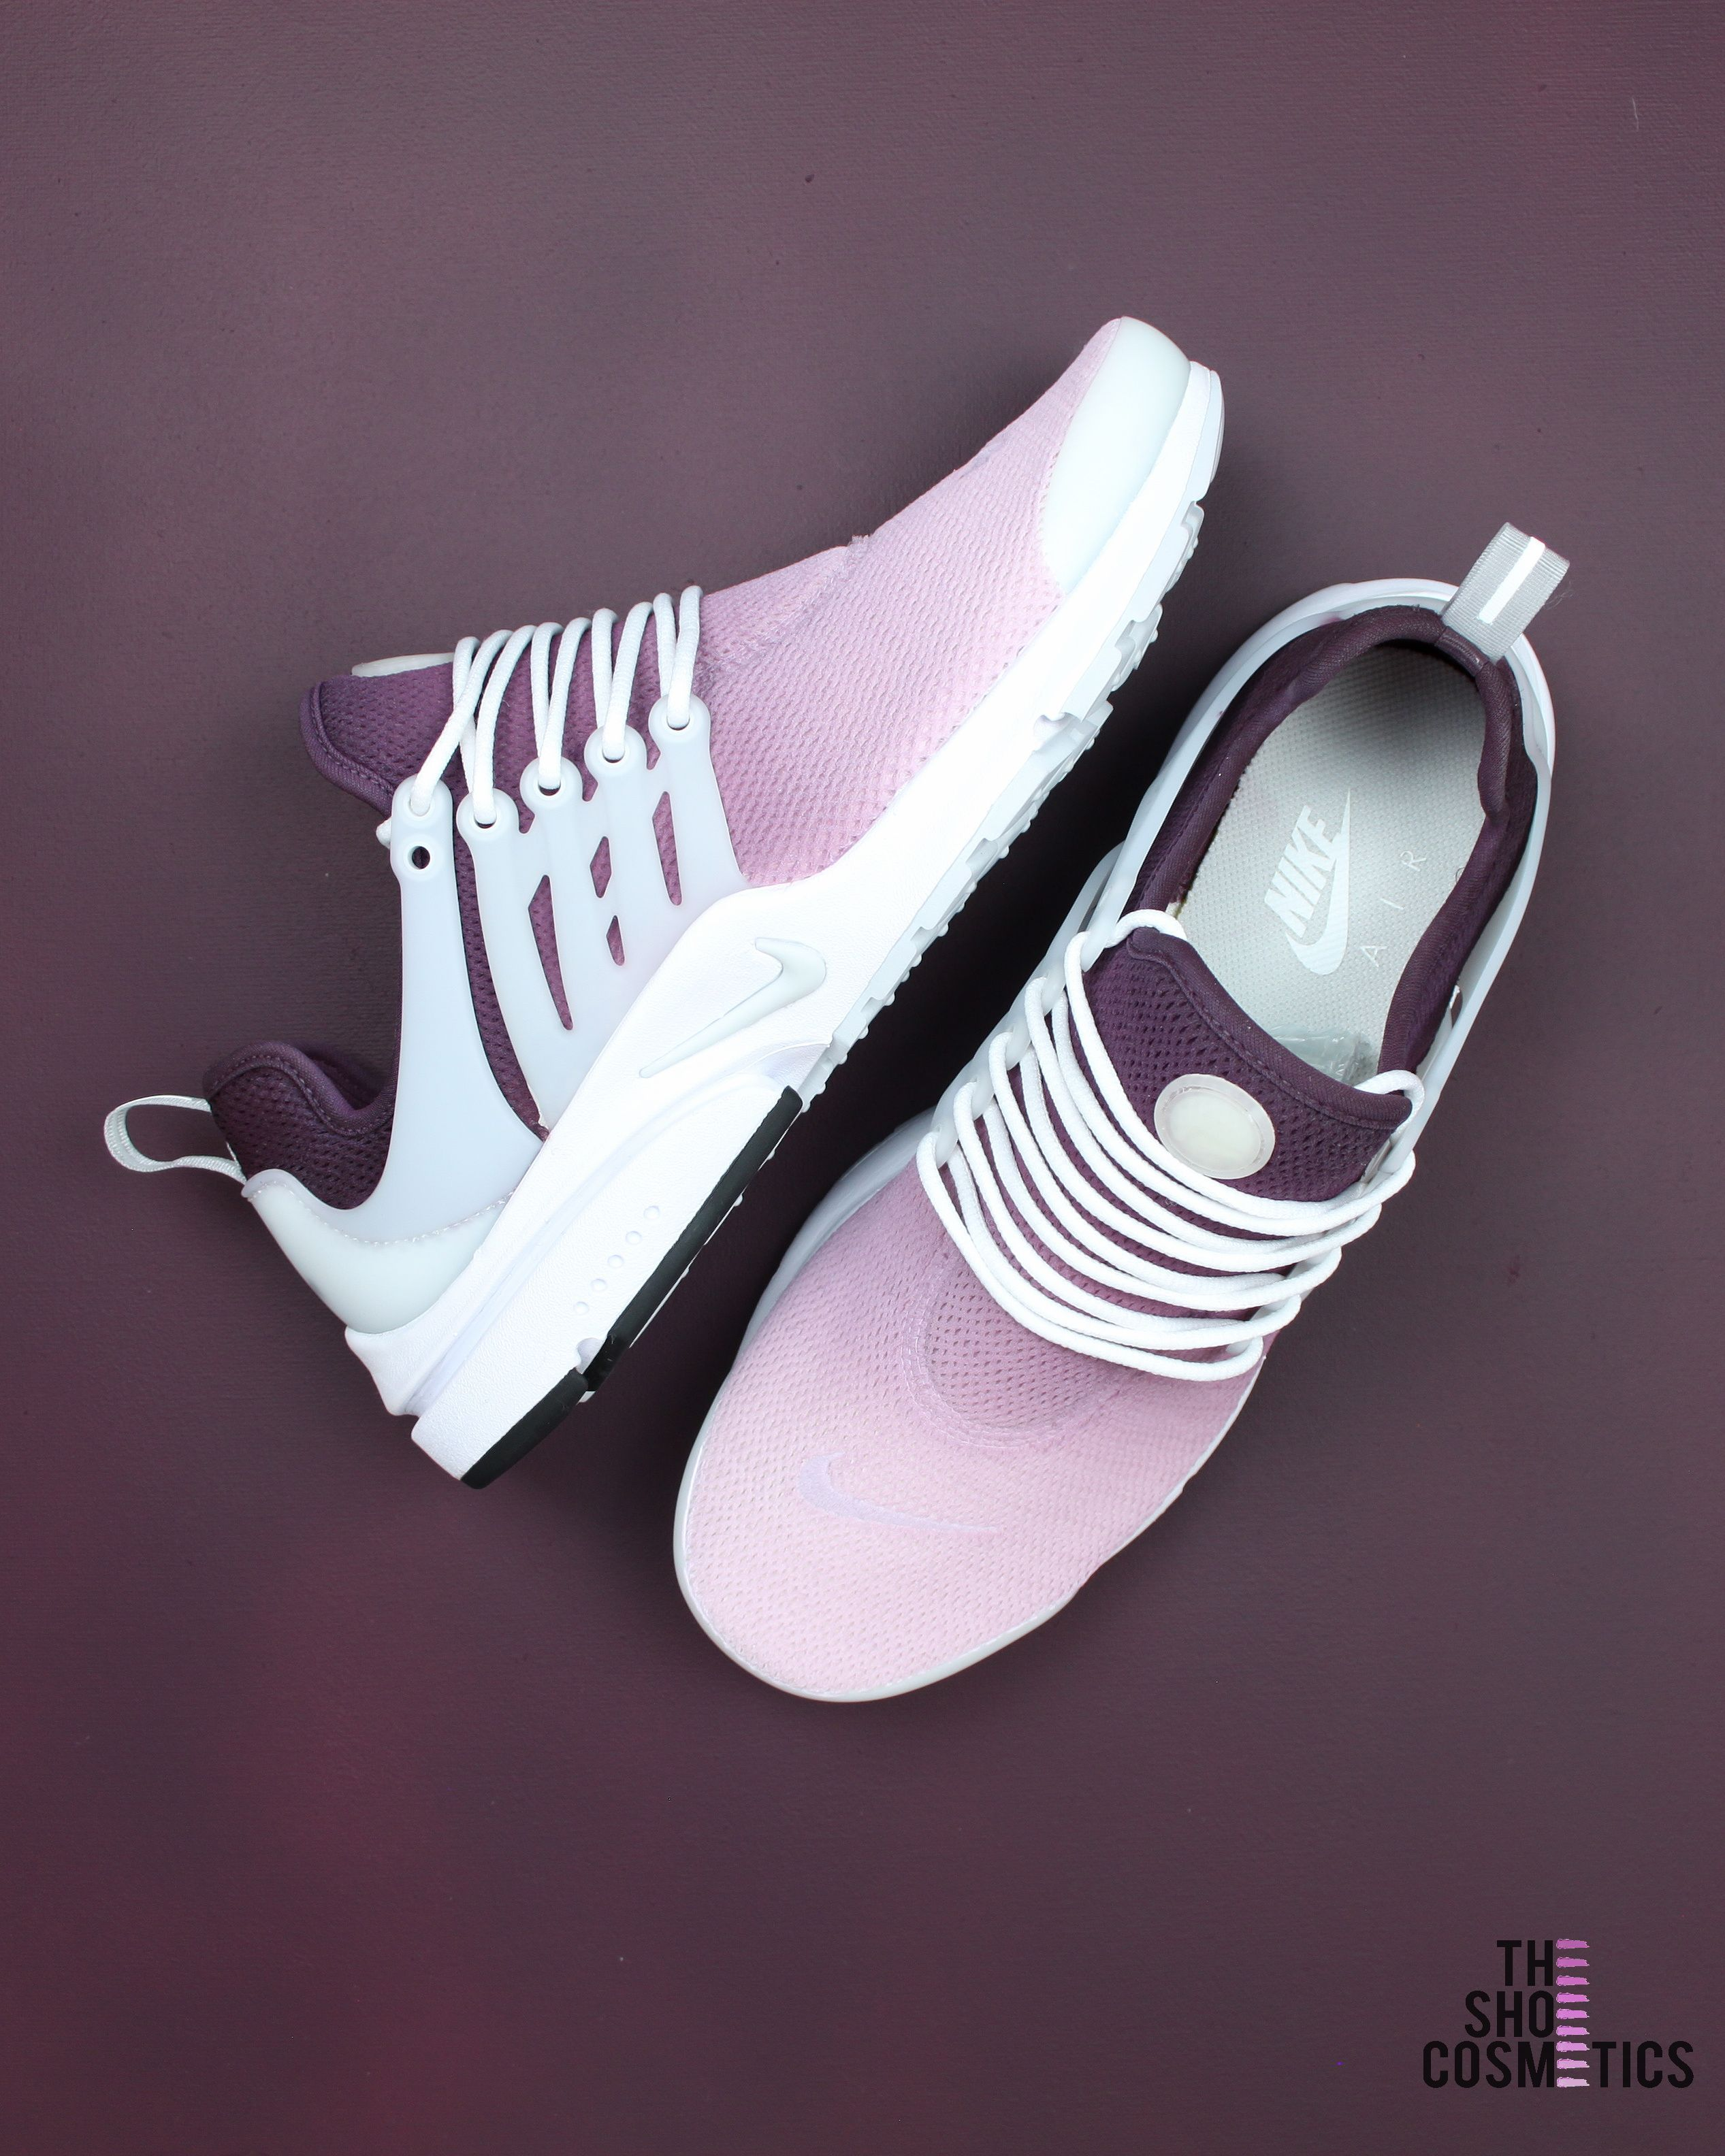 premium selection 51dbd 047b2 Explore our custom Nike Air Presto sneakers in this maroon ombre design. If  you love the Nike Air Presto then these Custom Nike shoes are perfect for  you.